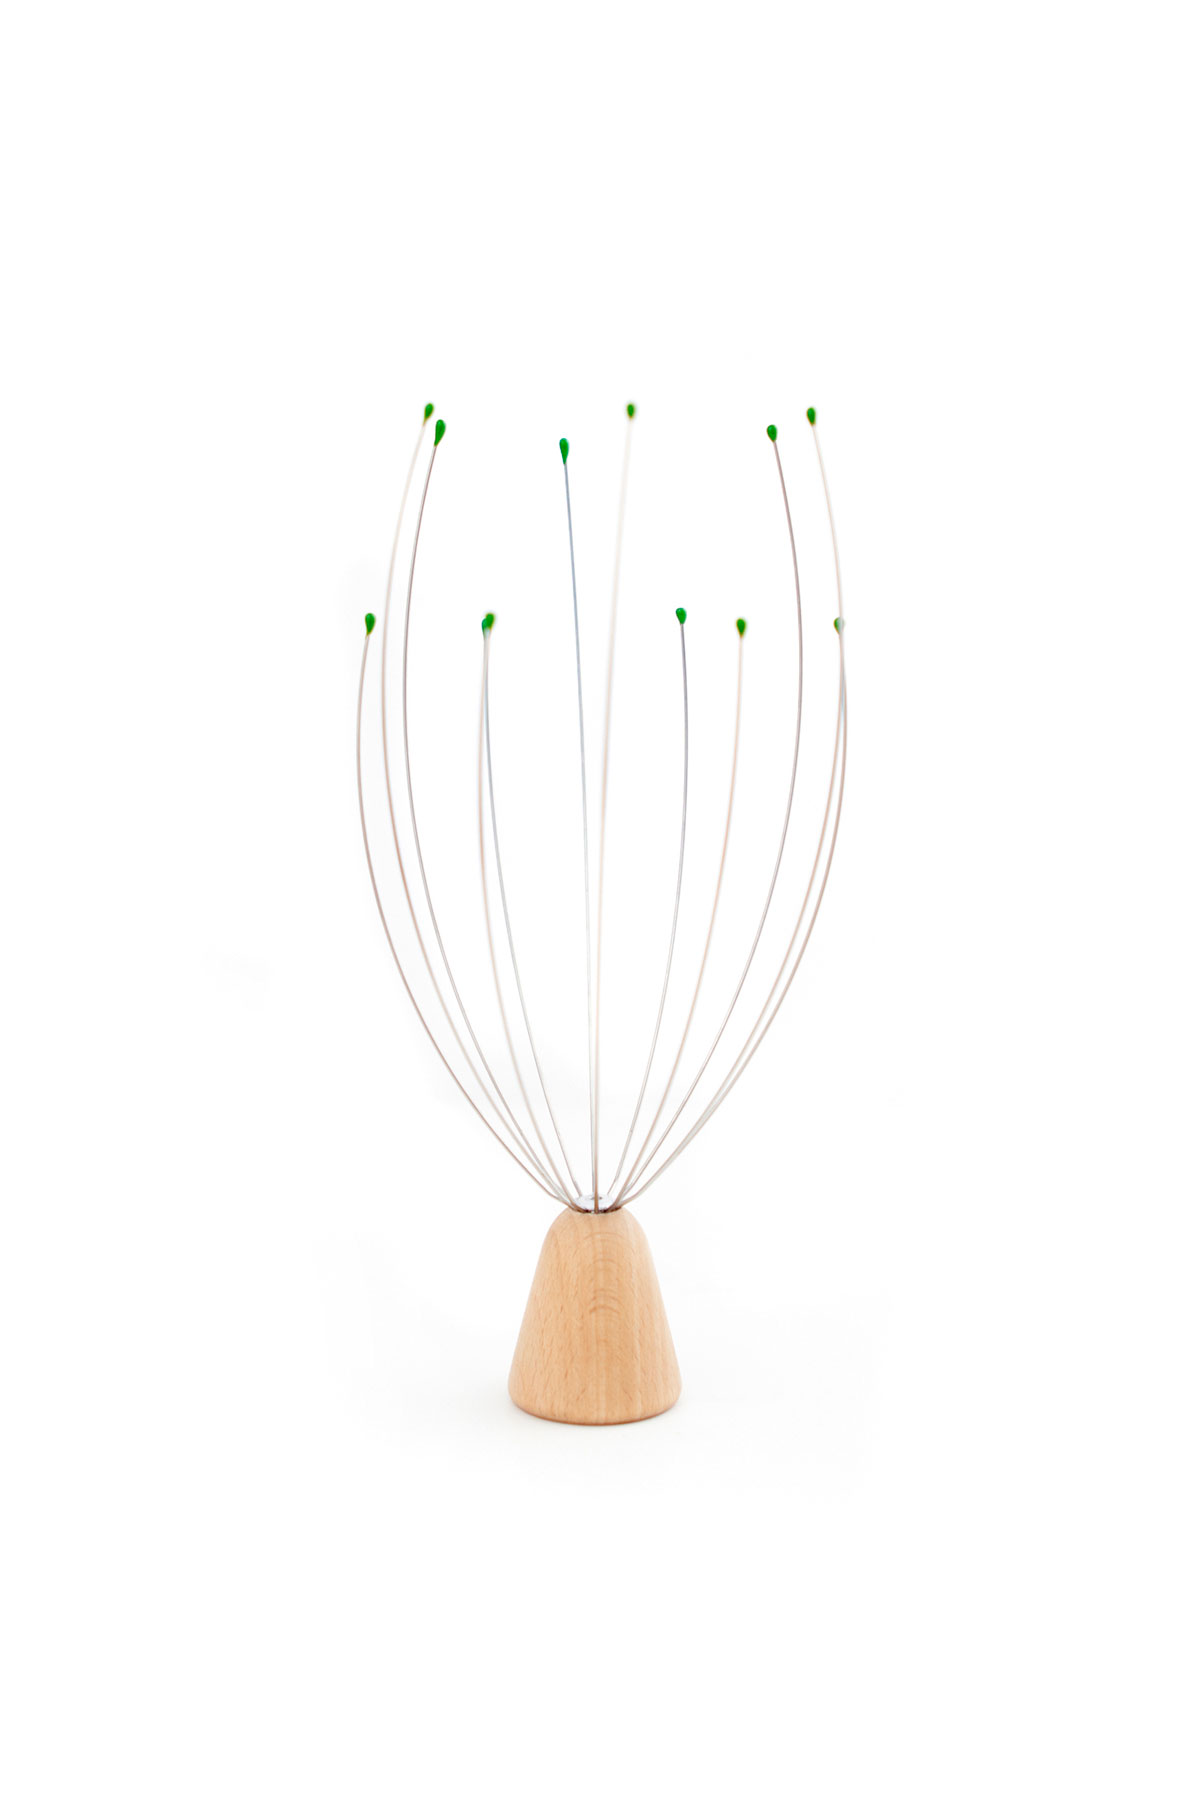 Kikkerland Wooden Standing Head Massager